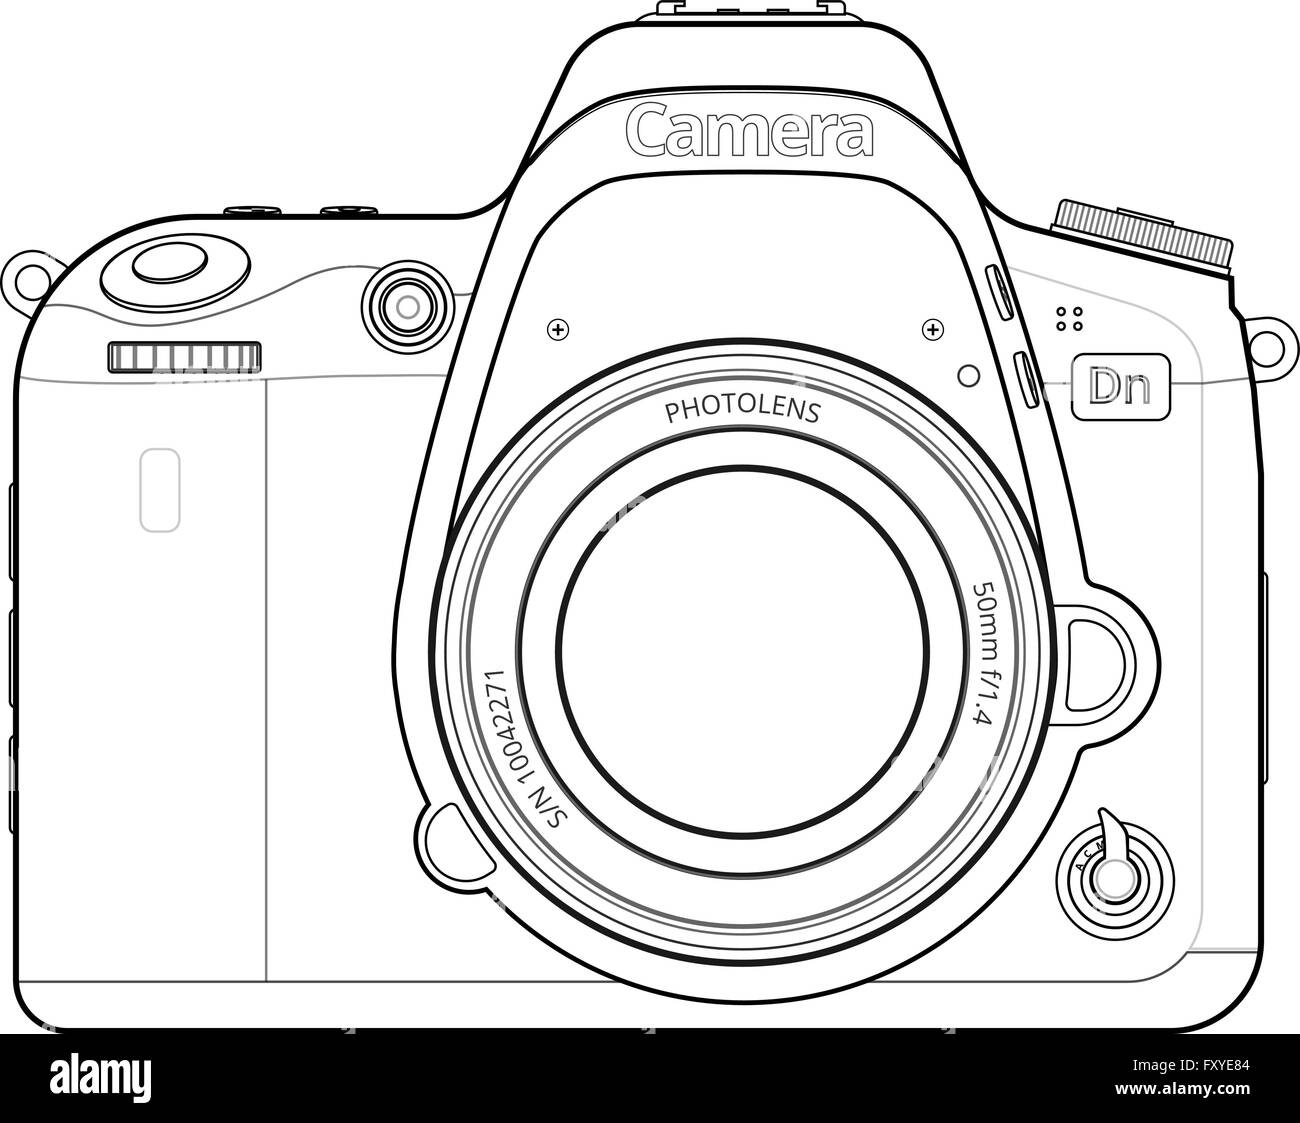 DSLR Camera Outline Stock Vector Art & Illustration ...